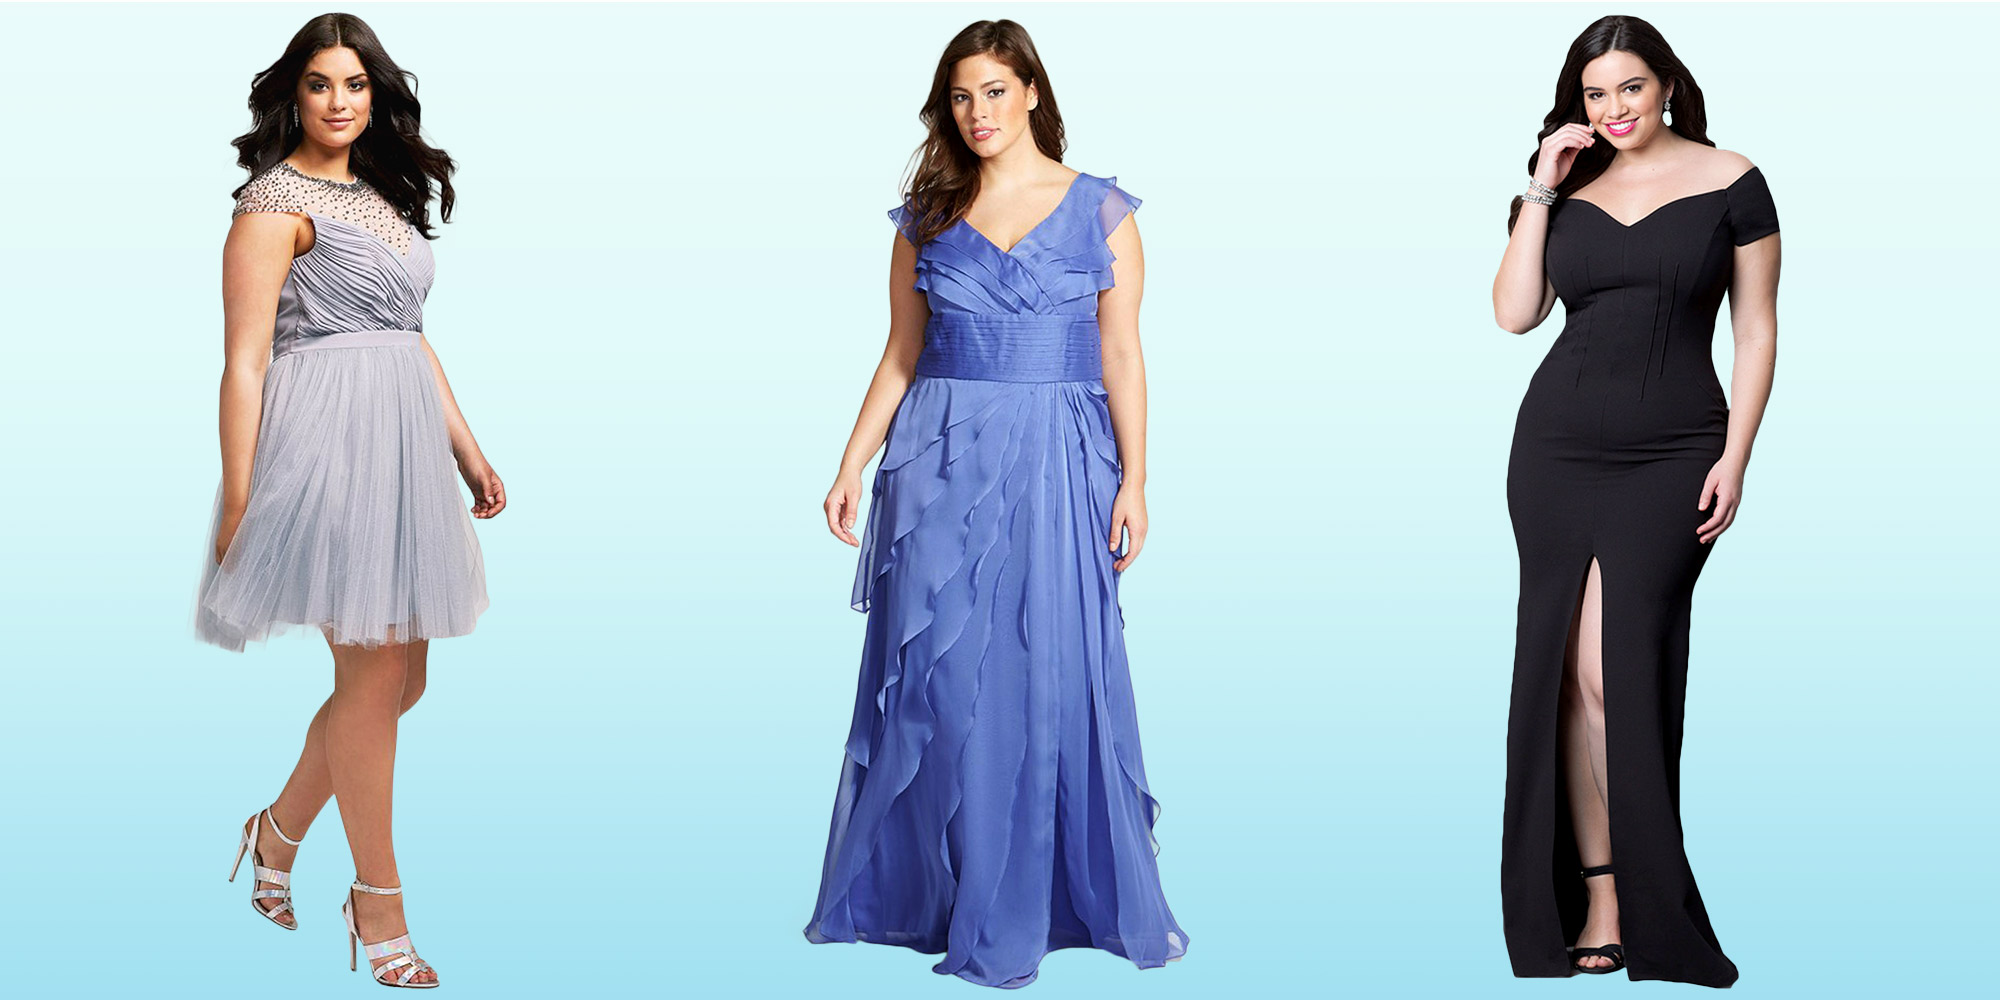 Prom Dresses For Larger Women - Discount Evening Dresses